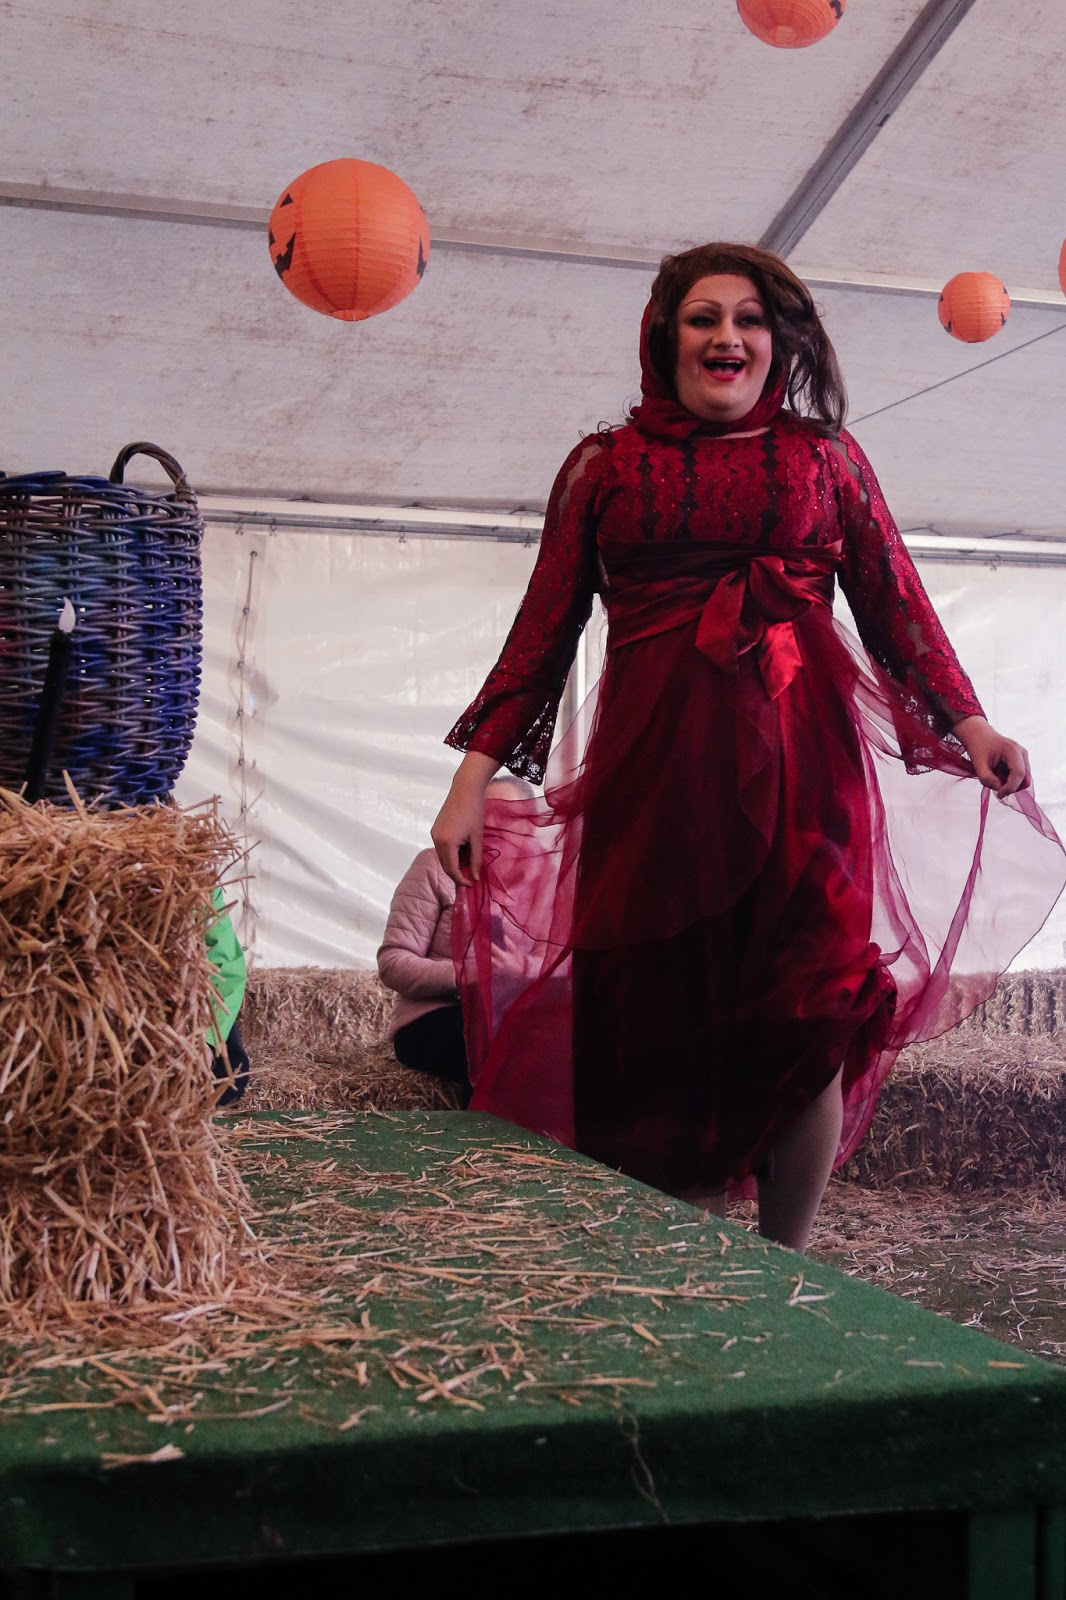 Long shot of one of the three witches at the M&D's pumpkin festival -  drag queen dressed up as a hocus pocus witch.